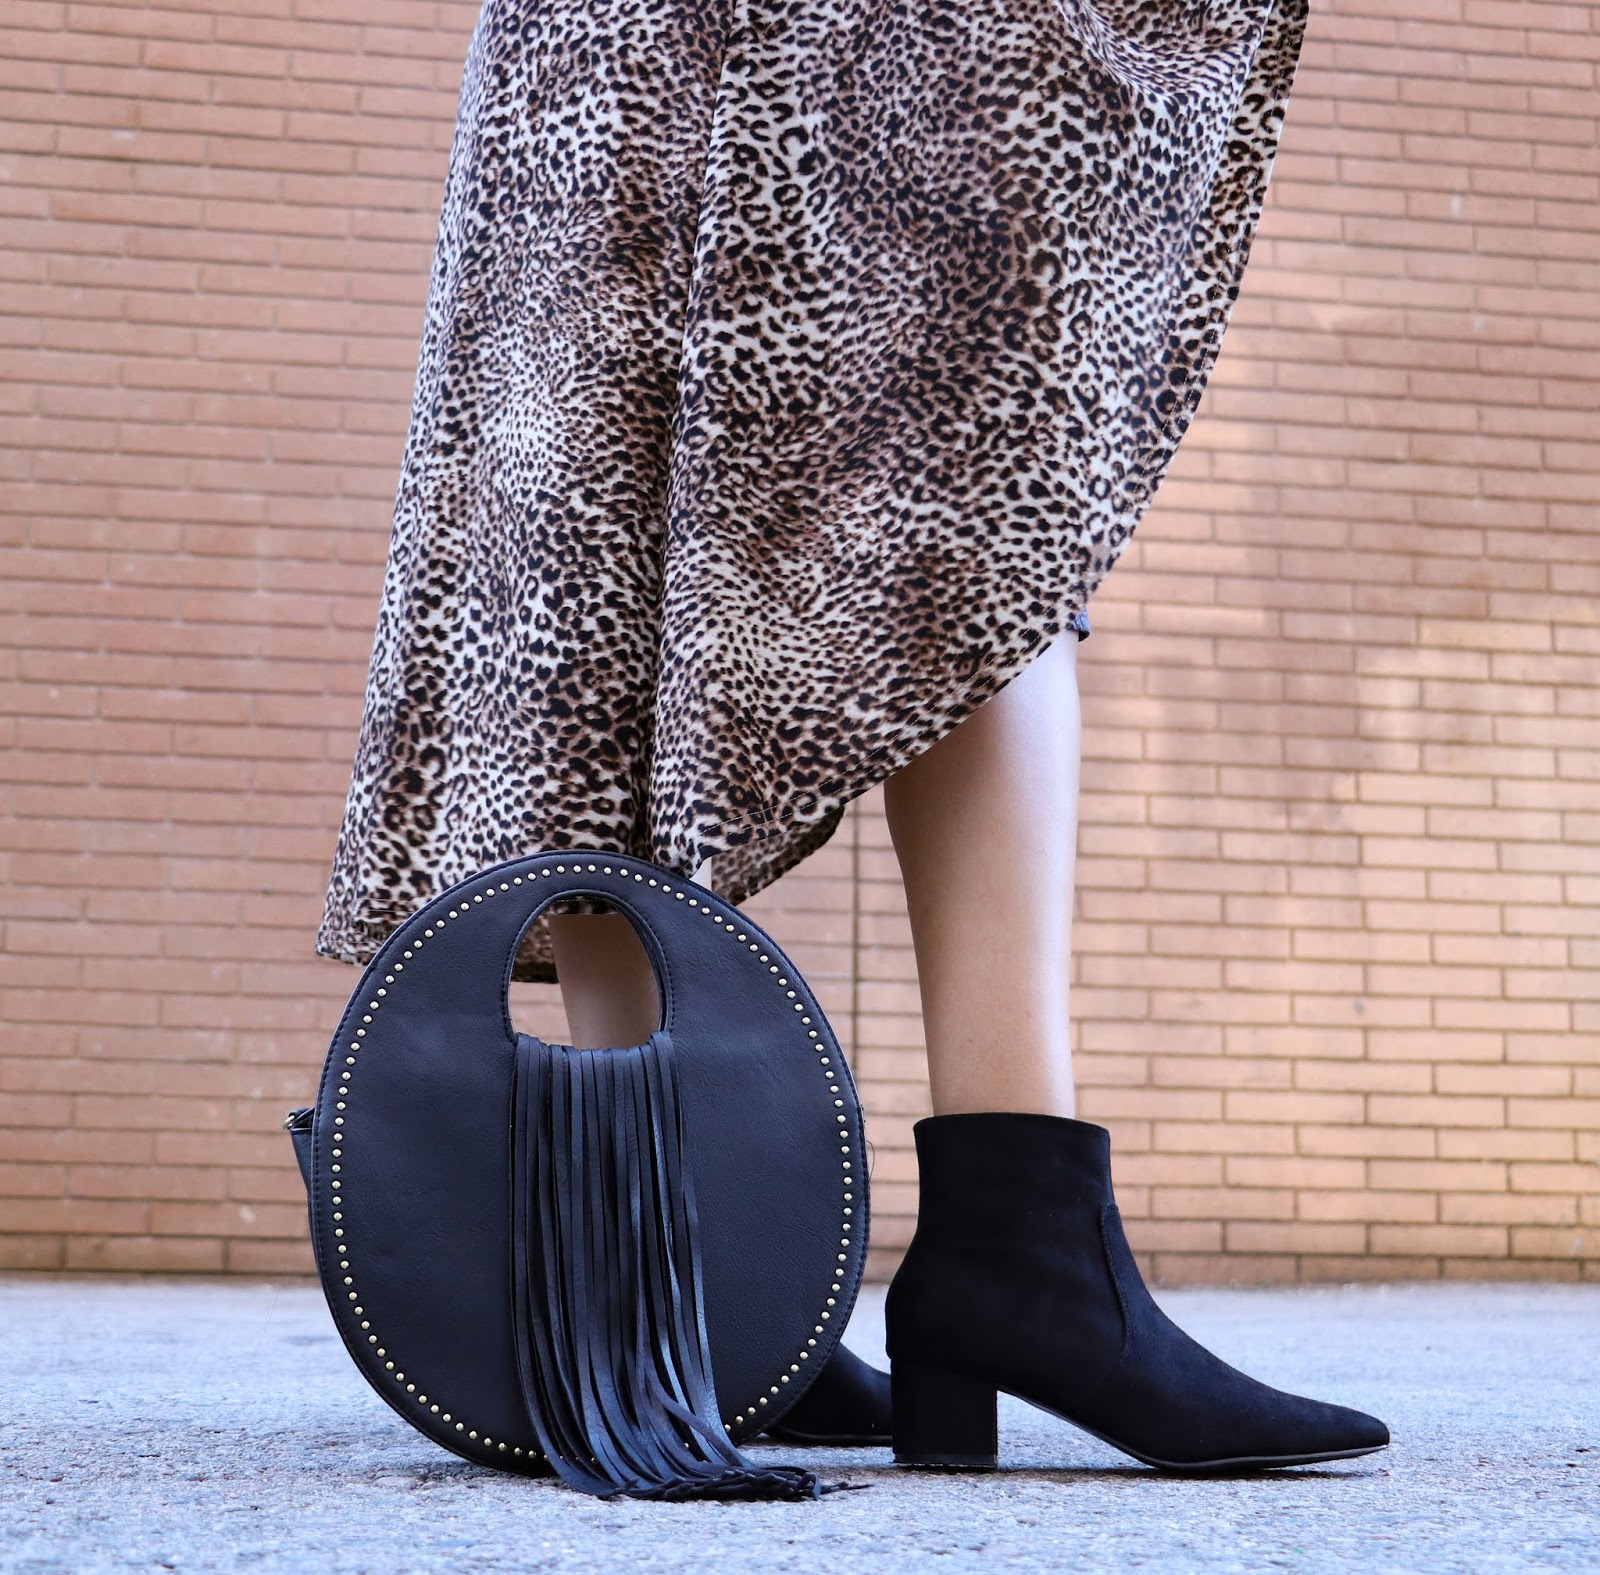 Leopard Duster, Black Round fringe purse with gold studs and black pointed Vegan suede boots